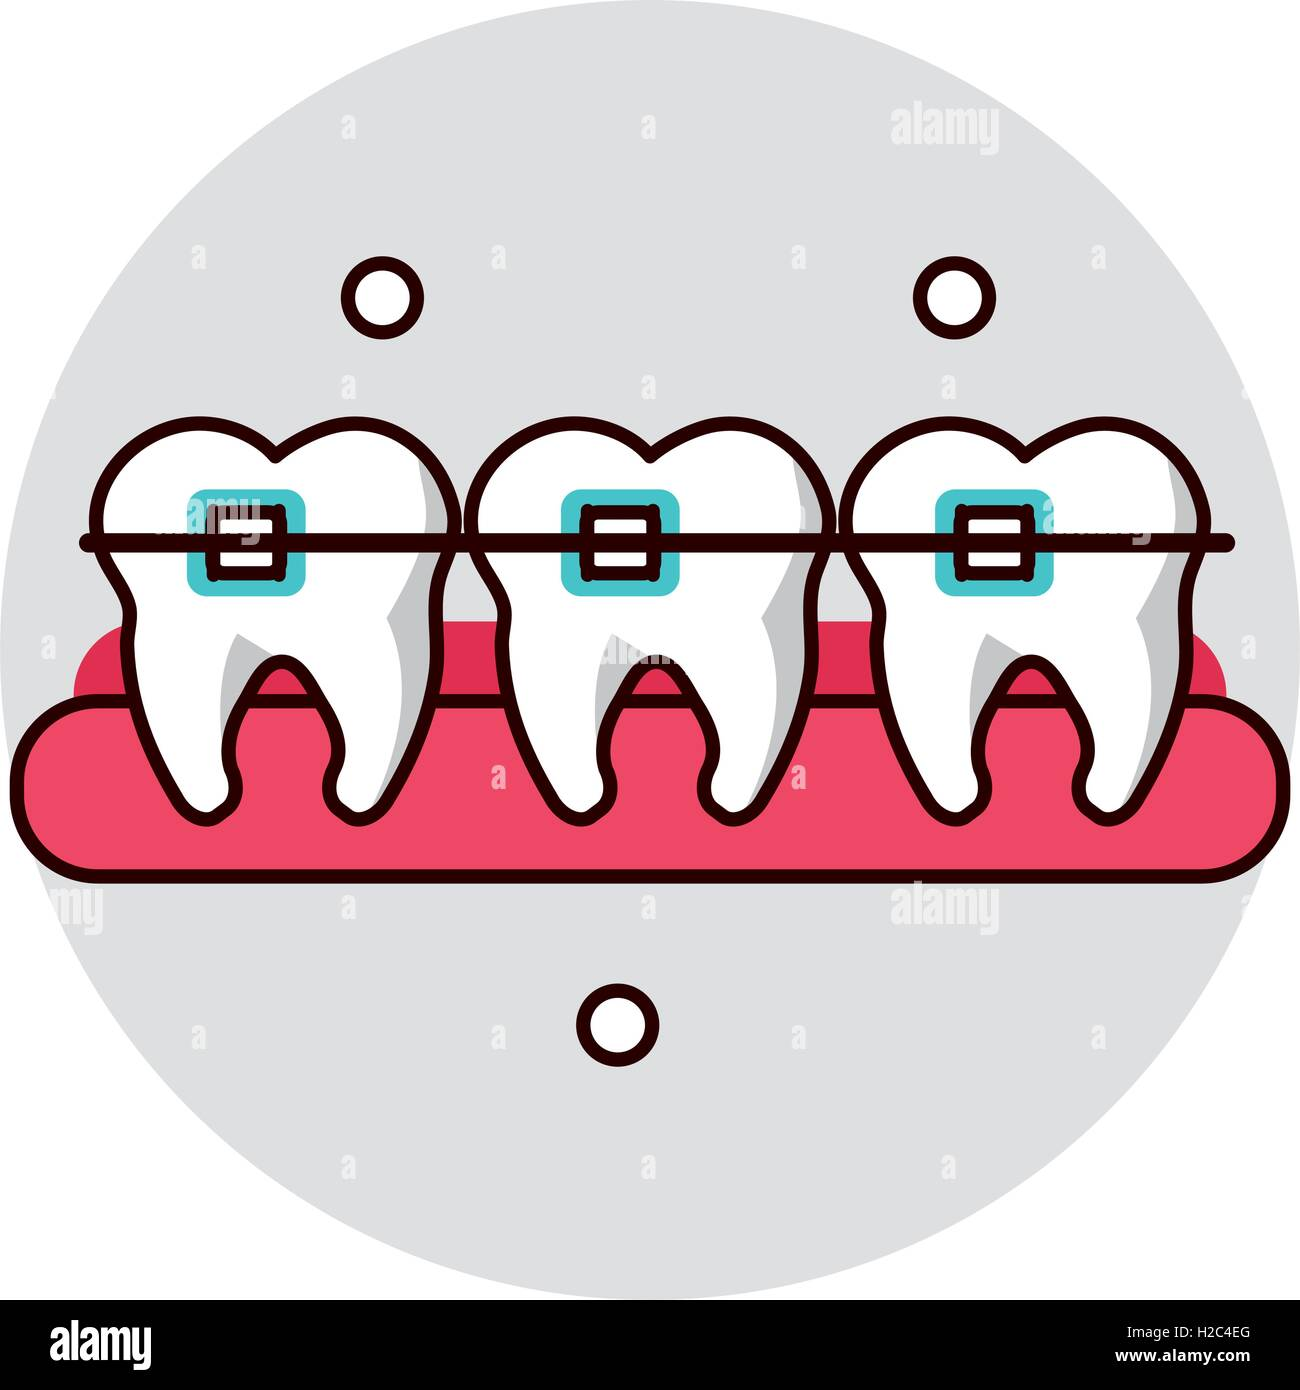 Dental medical and health care design Stock Vector